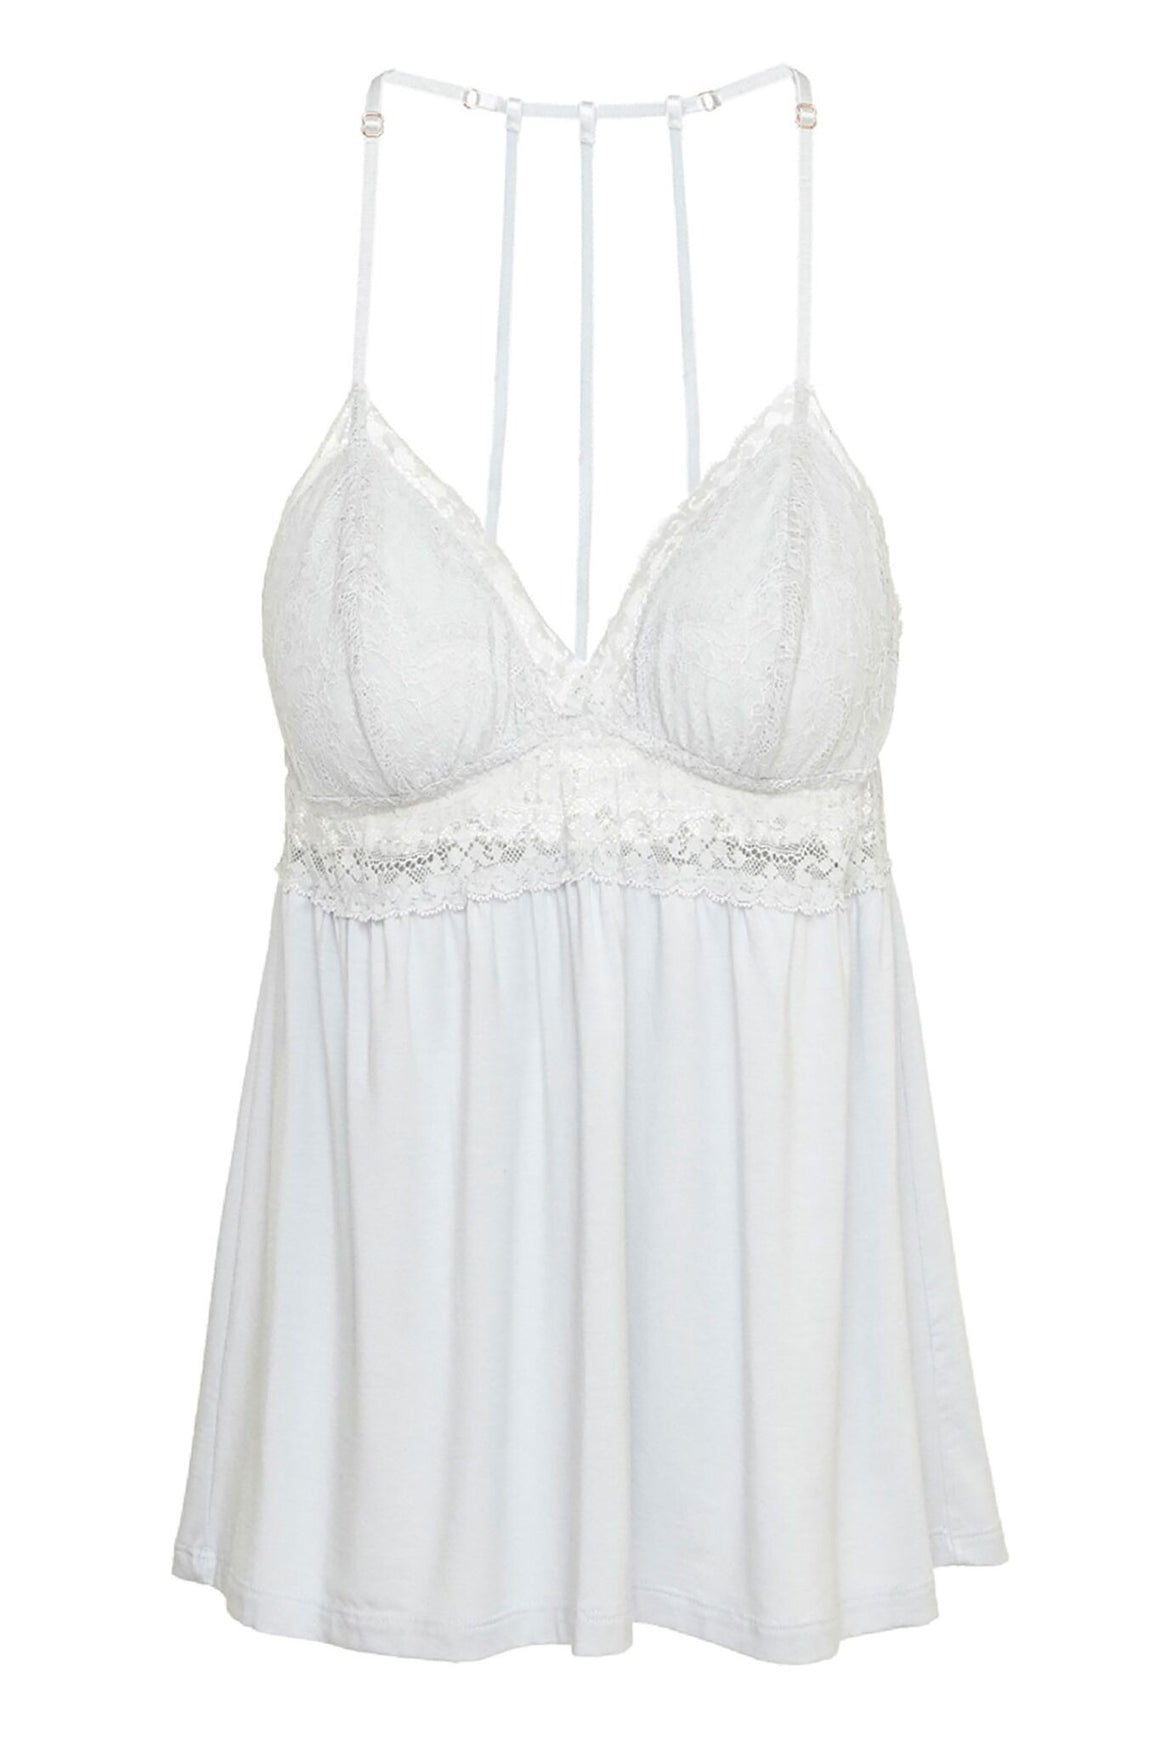 Eberjey Elvia Racerback Cami - Lounge Beauties